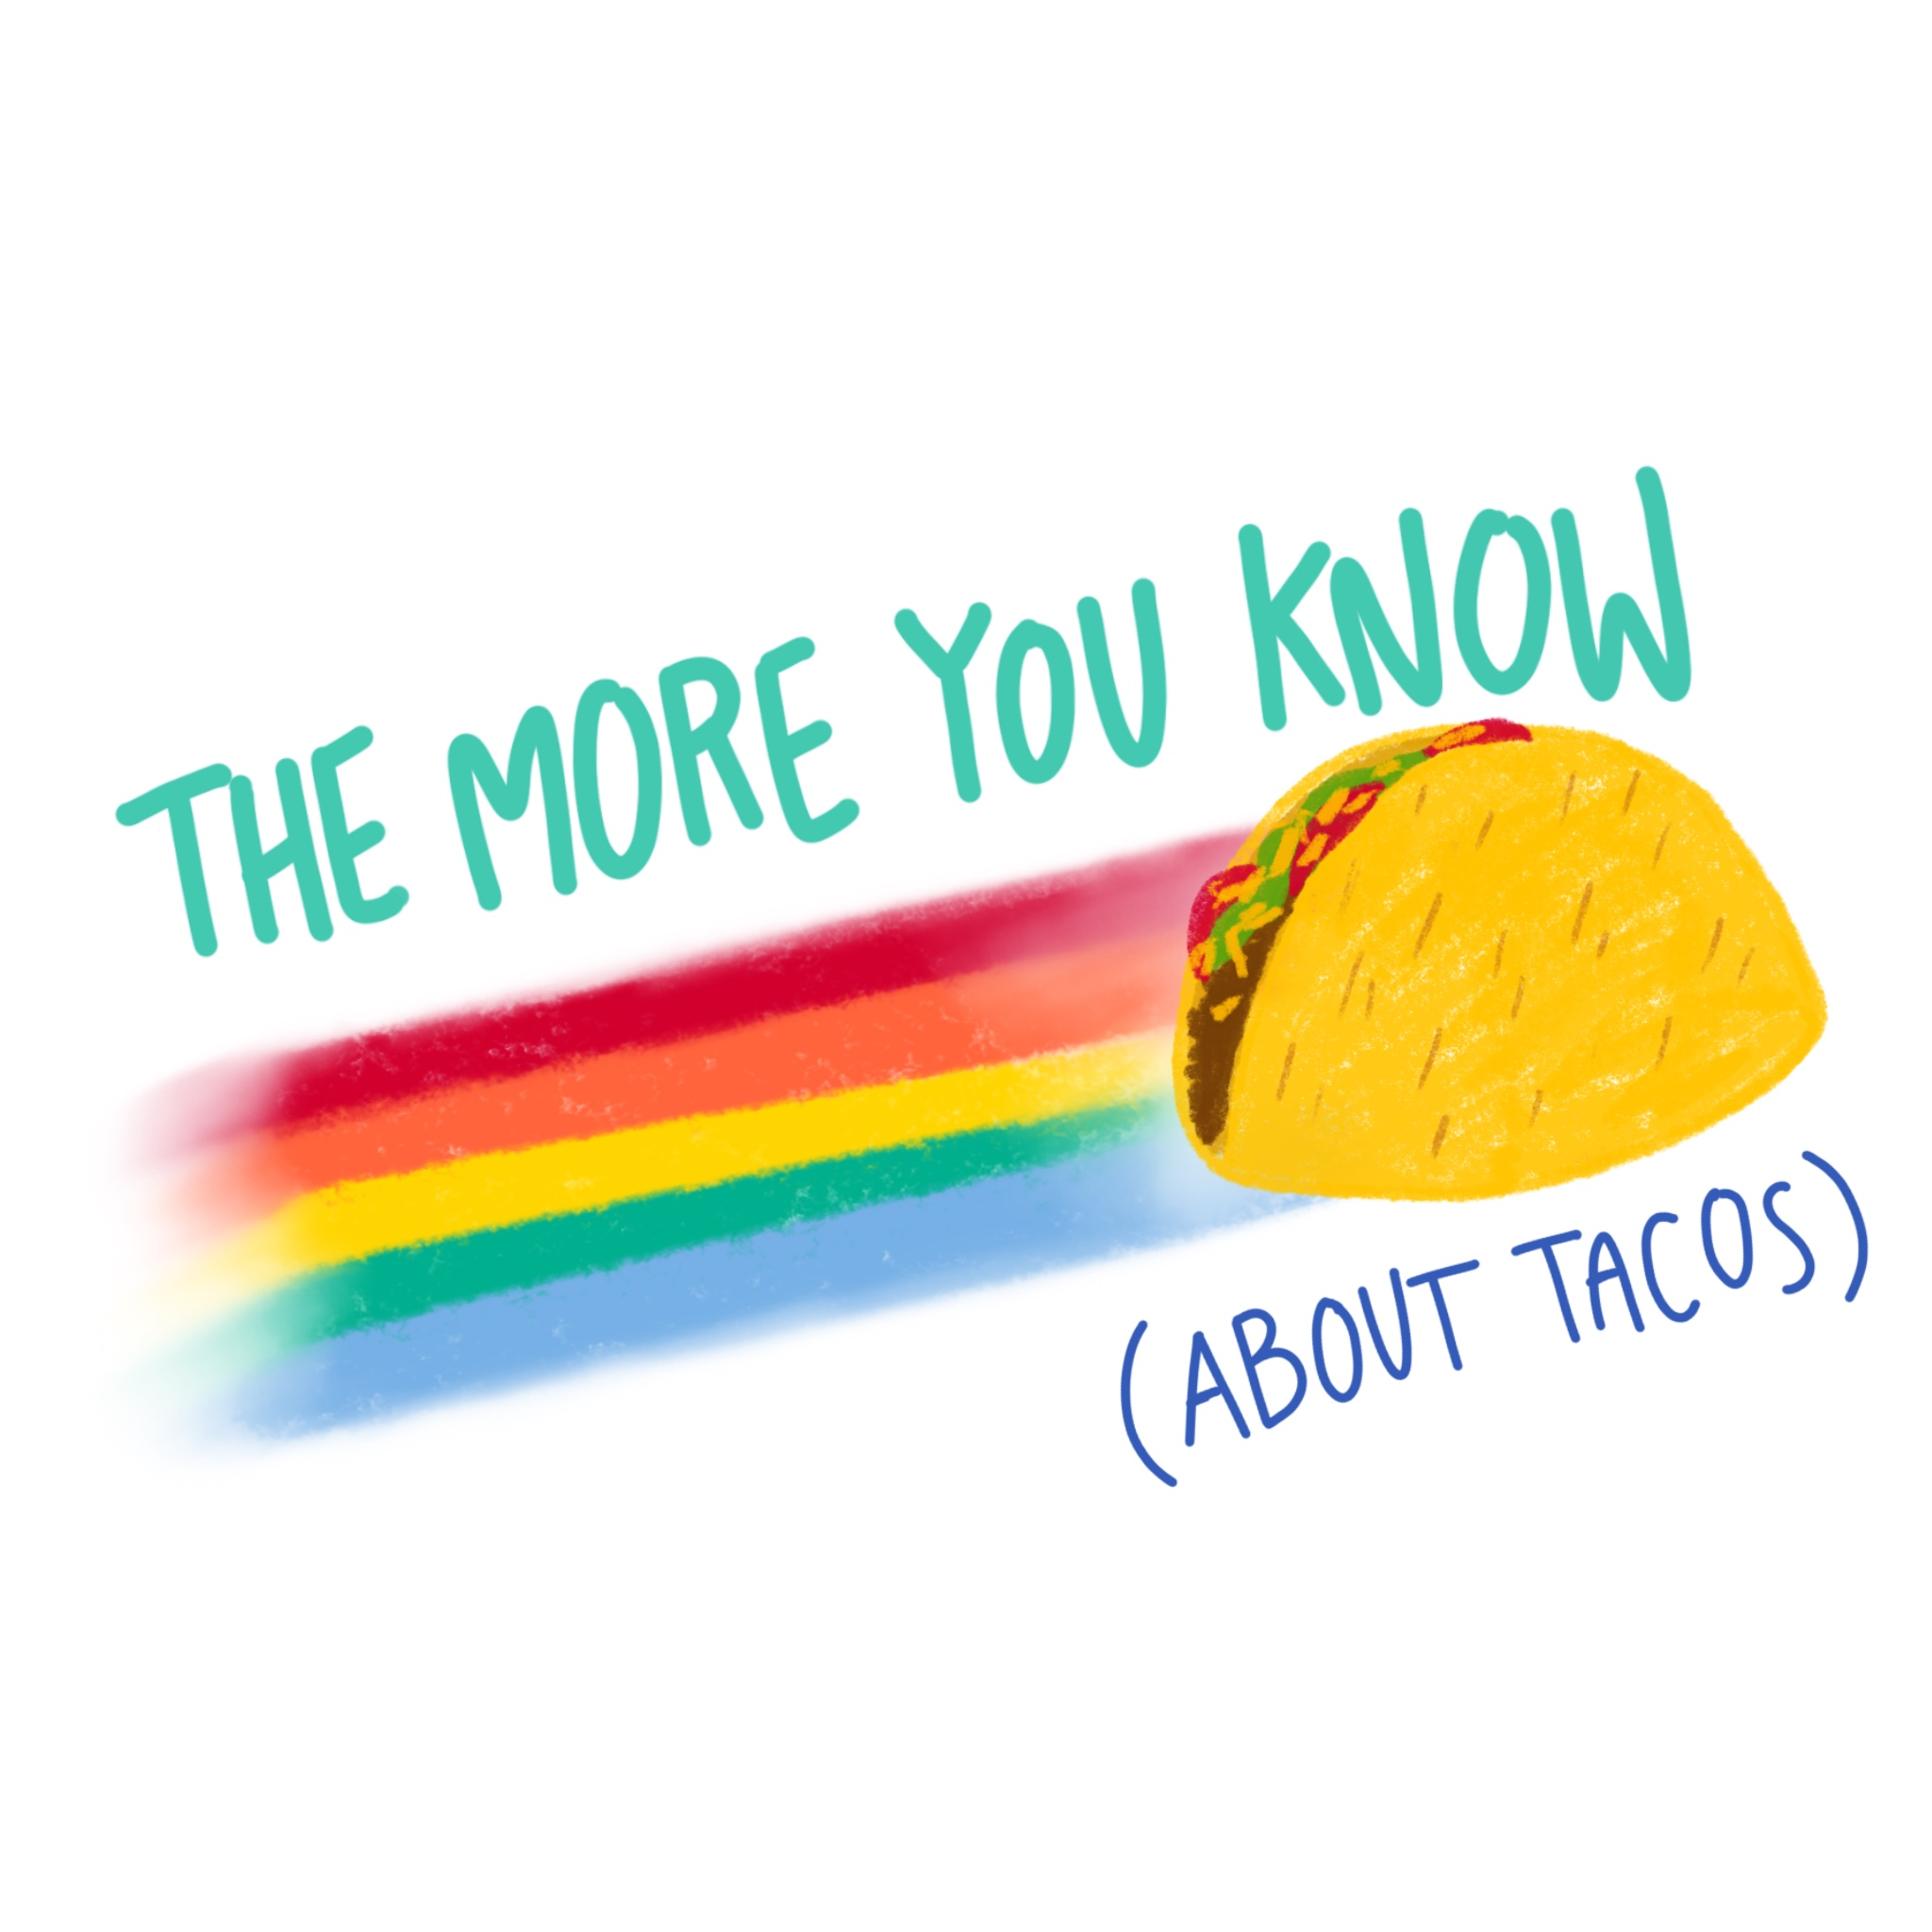 The More You Know About Tacos.jpg